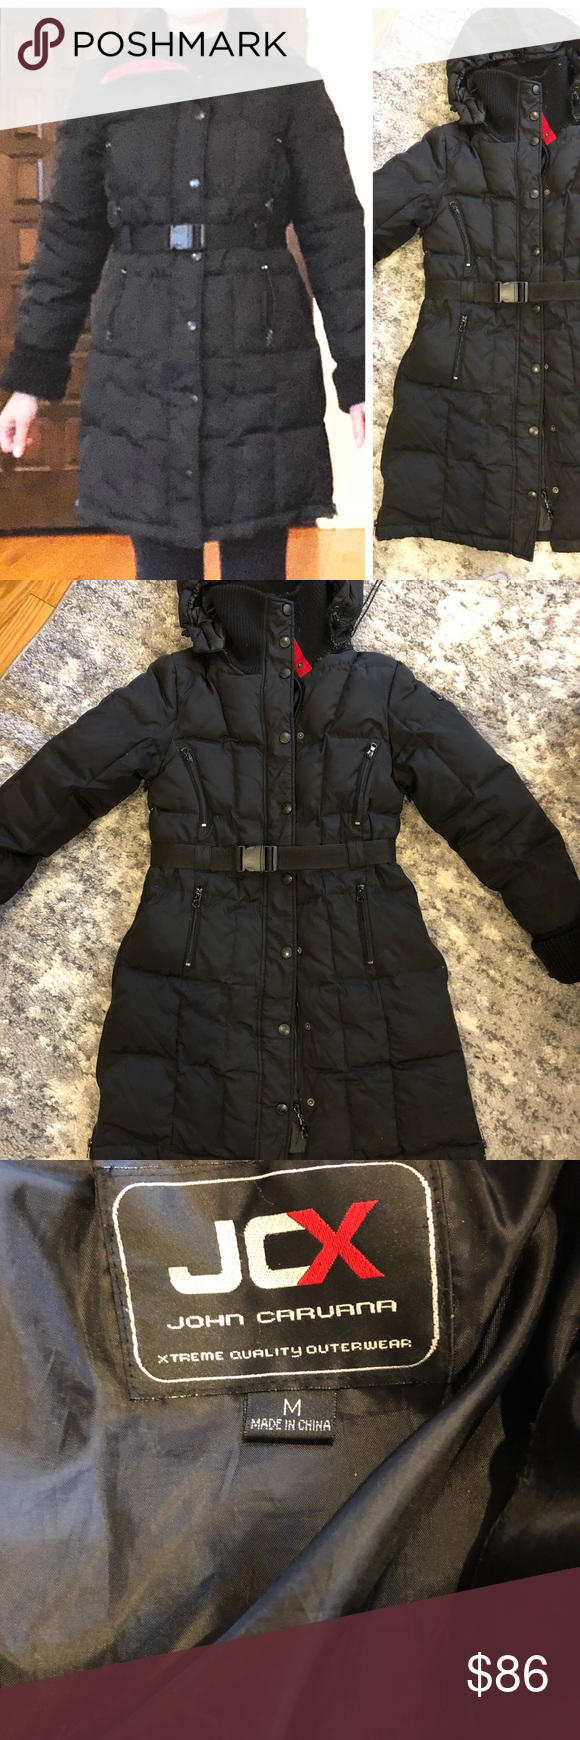 Jcx John Caruana Xtreme Quality Belted Down Coat Wear This Like This Stay Warm And Dry In The Jcx Xtreme Quality Belted Down Coat Quality Belt Women Shopping [ 1740 x 580 Pixel ]